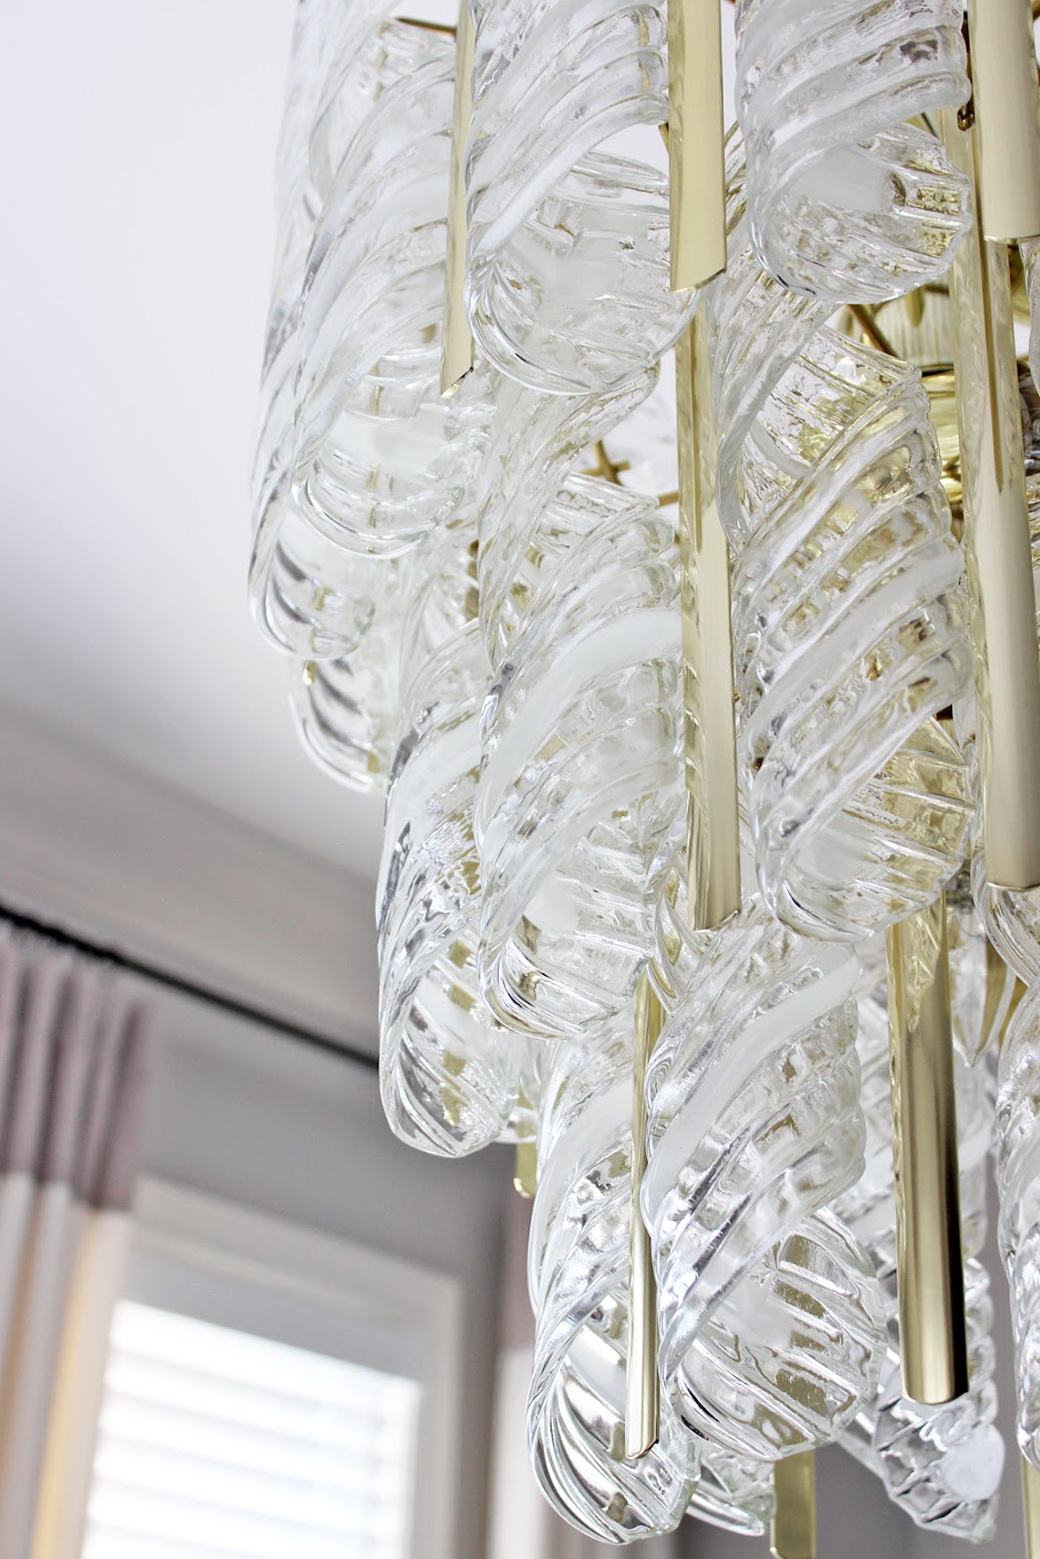 Murano Glass Chandeliers Toronto